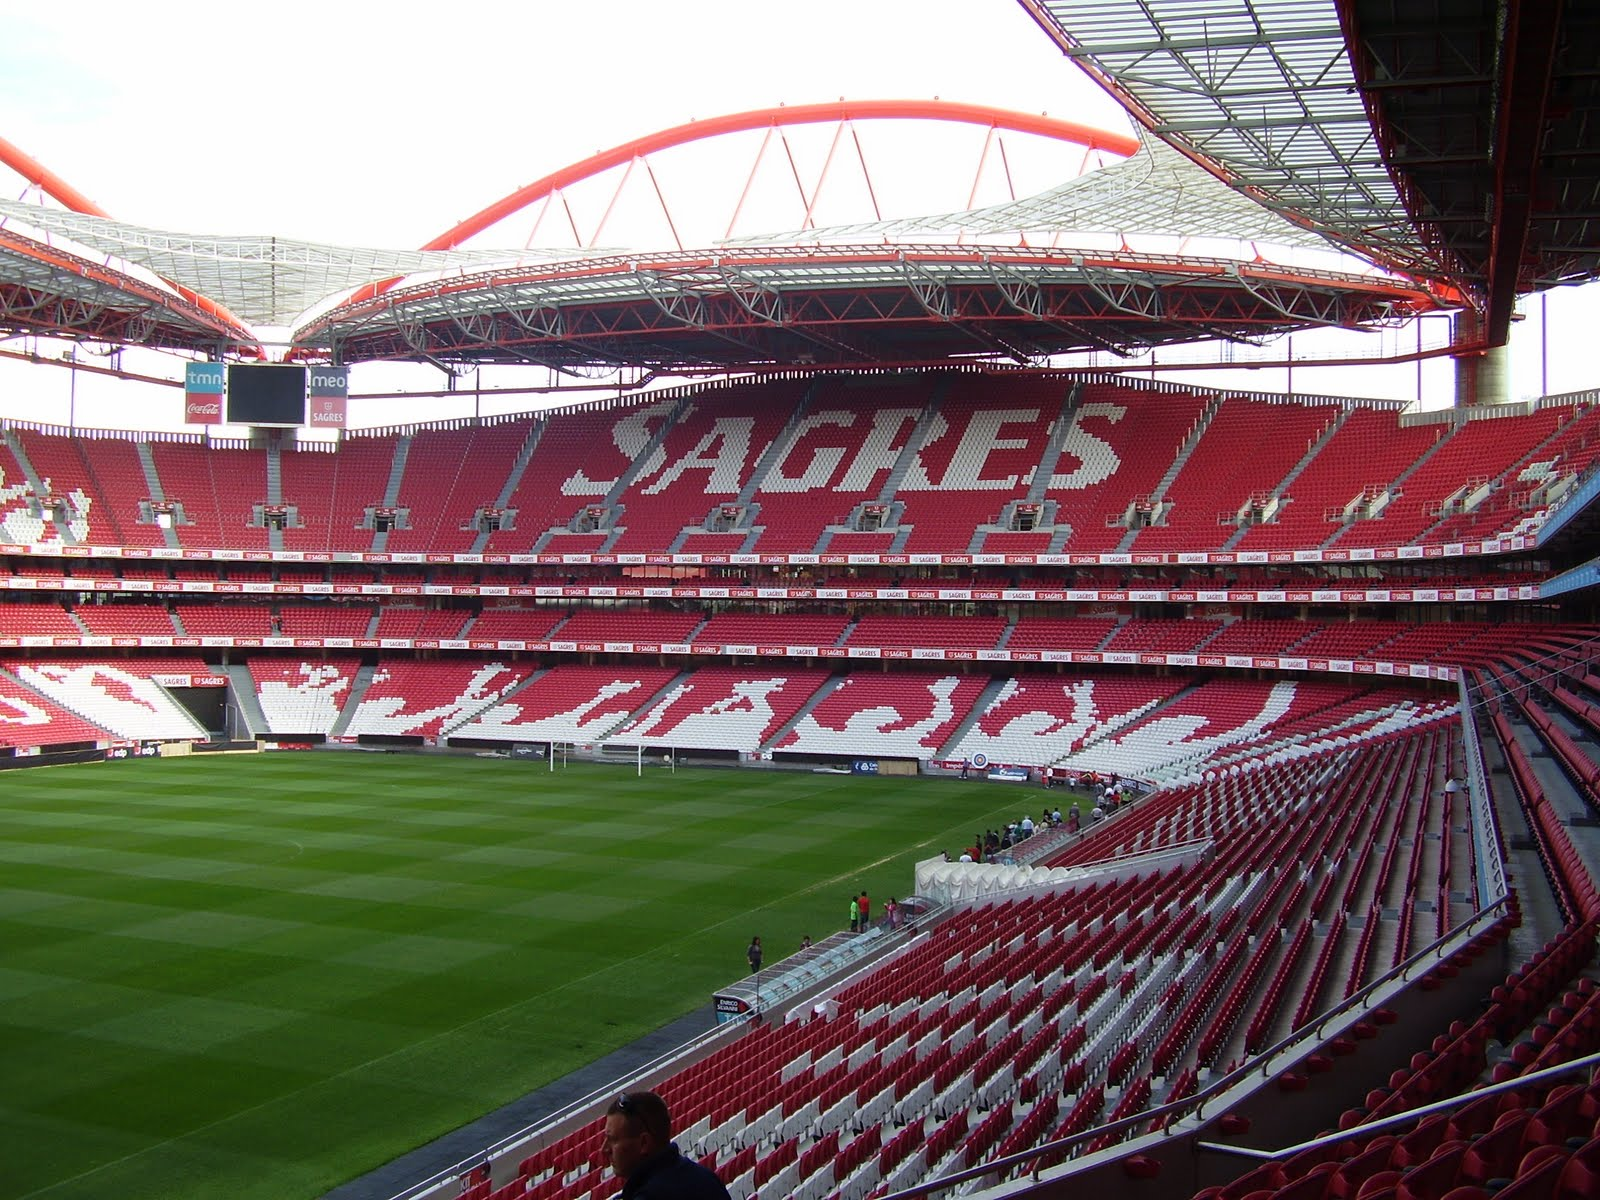 Catenaccio 2 sport lisboa e benfica fans twitter meeting for Piso 0 inferior estadio da luz